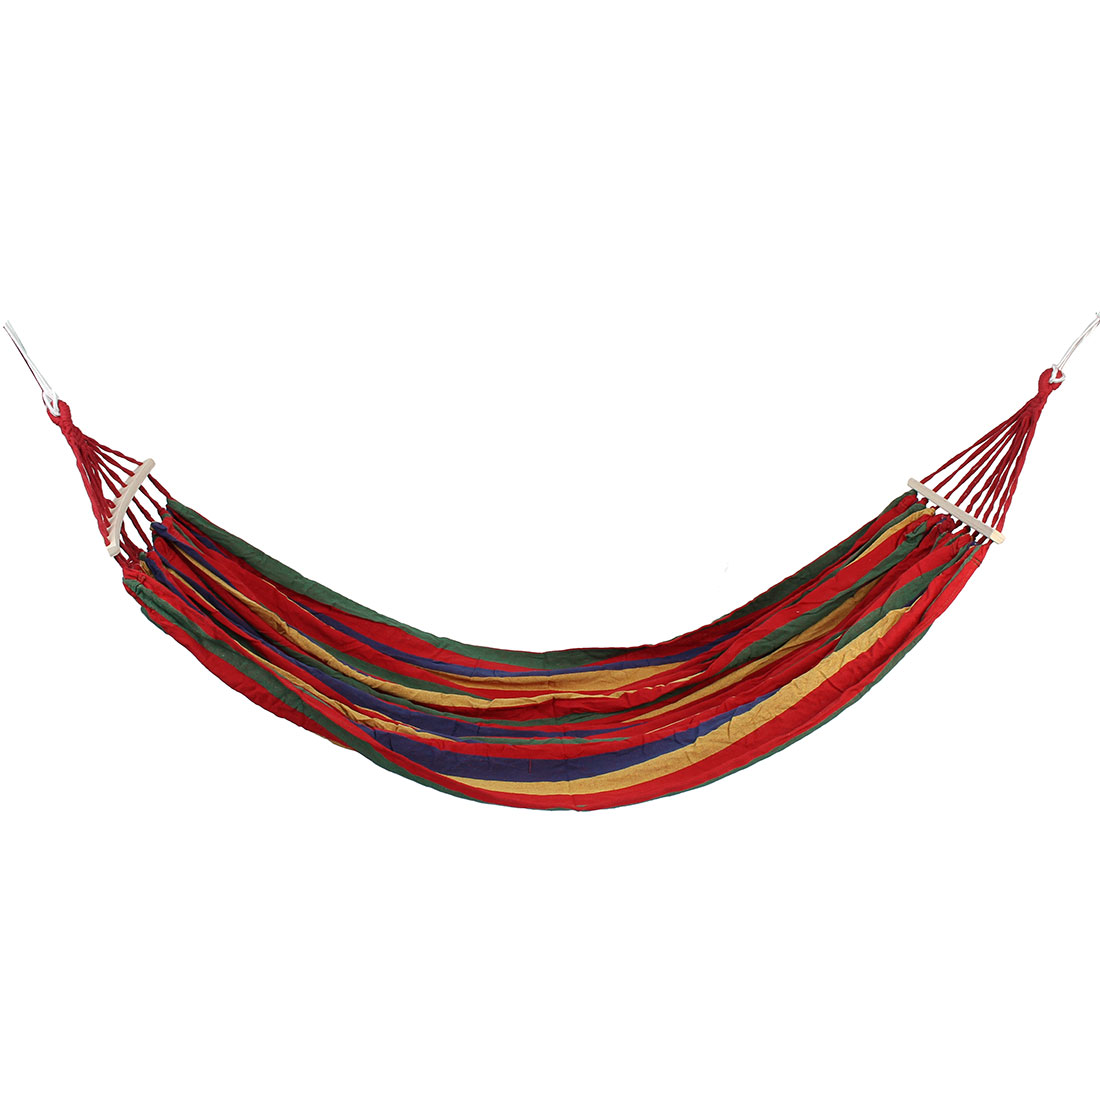 Camping Travel Hiking Canvas Spreader Bars Swing Hanging Bed Suspended Hammock